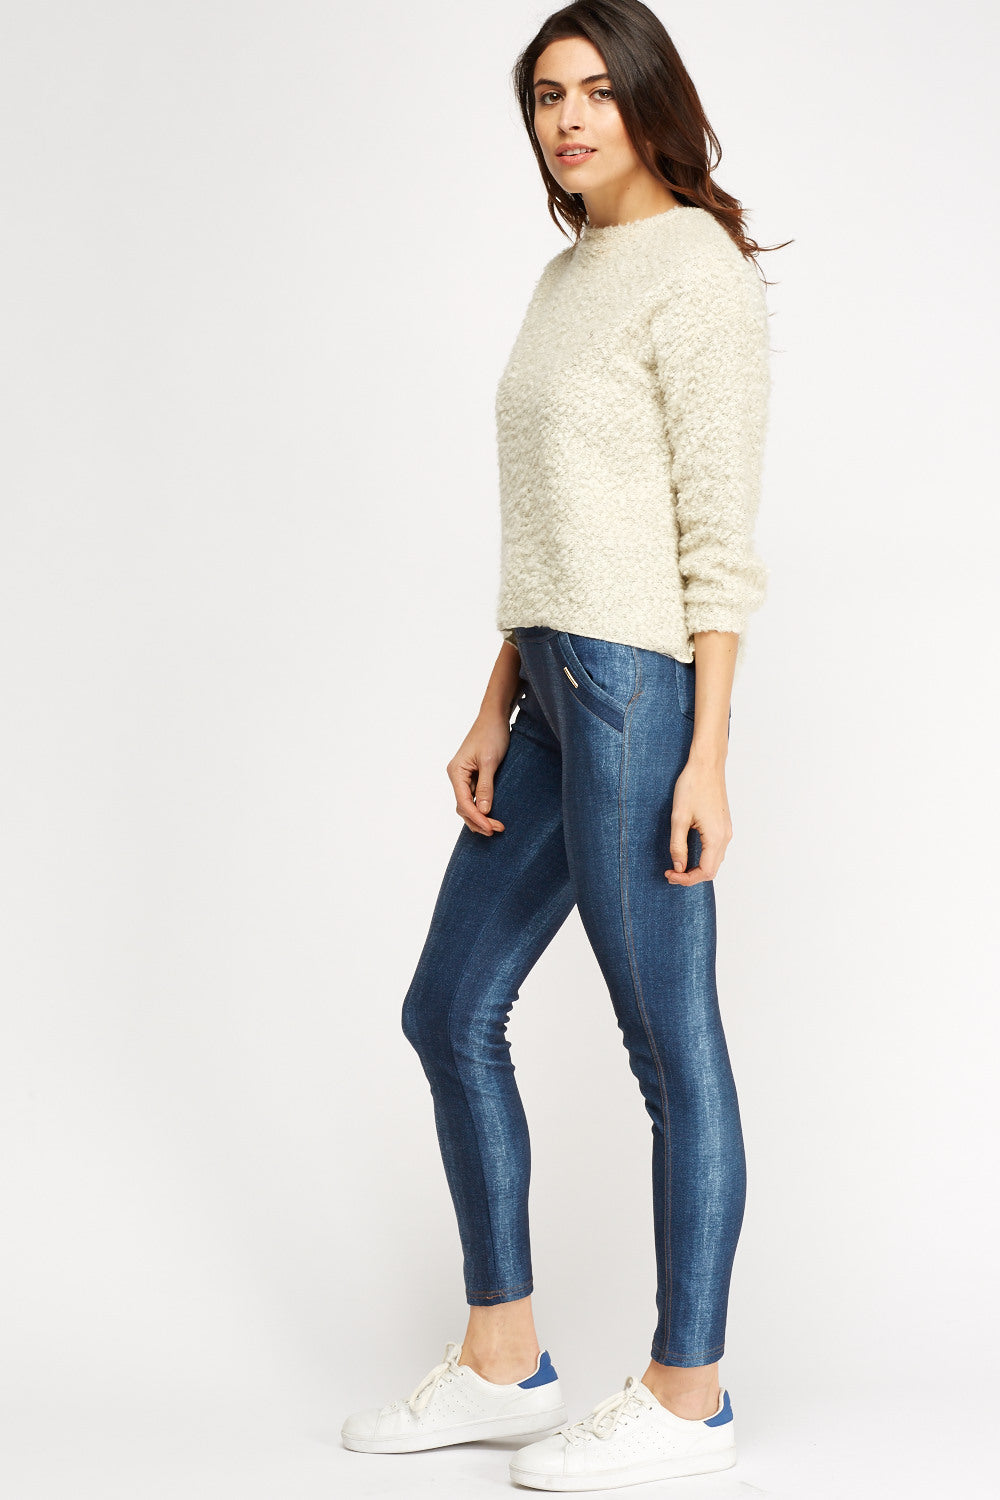 Jeggings talle alto